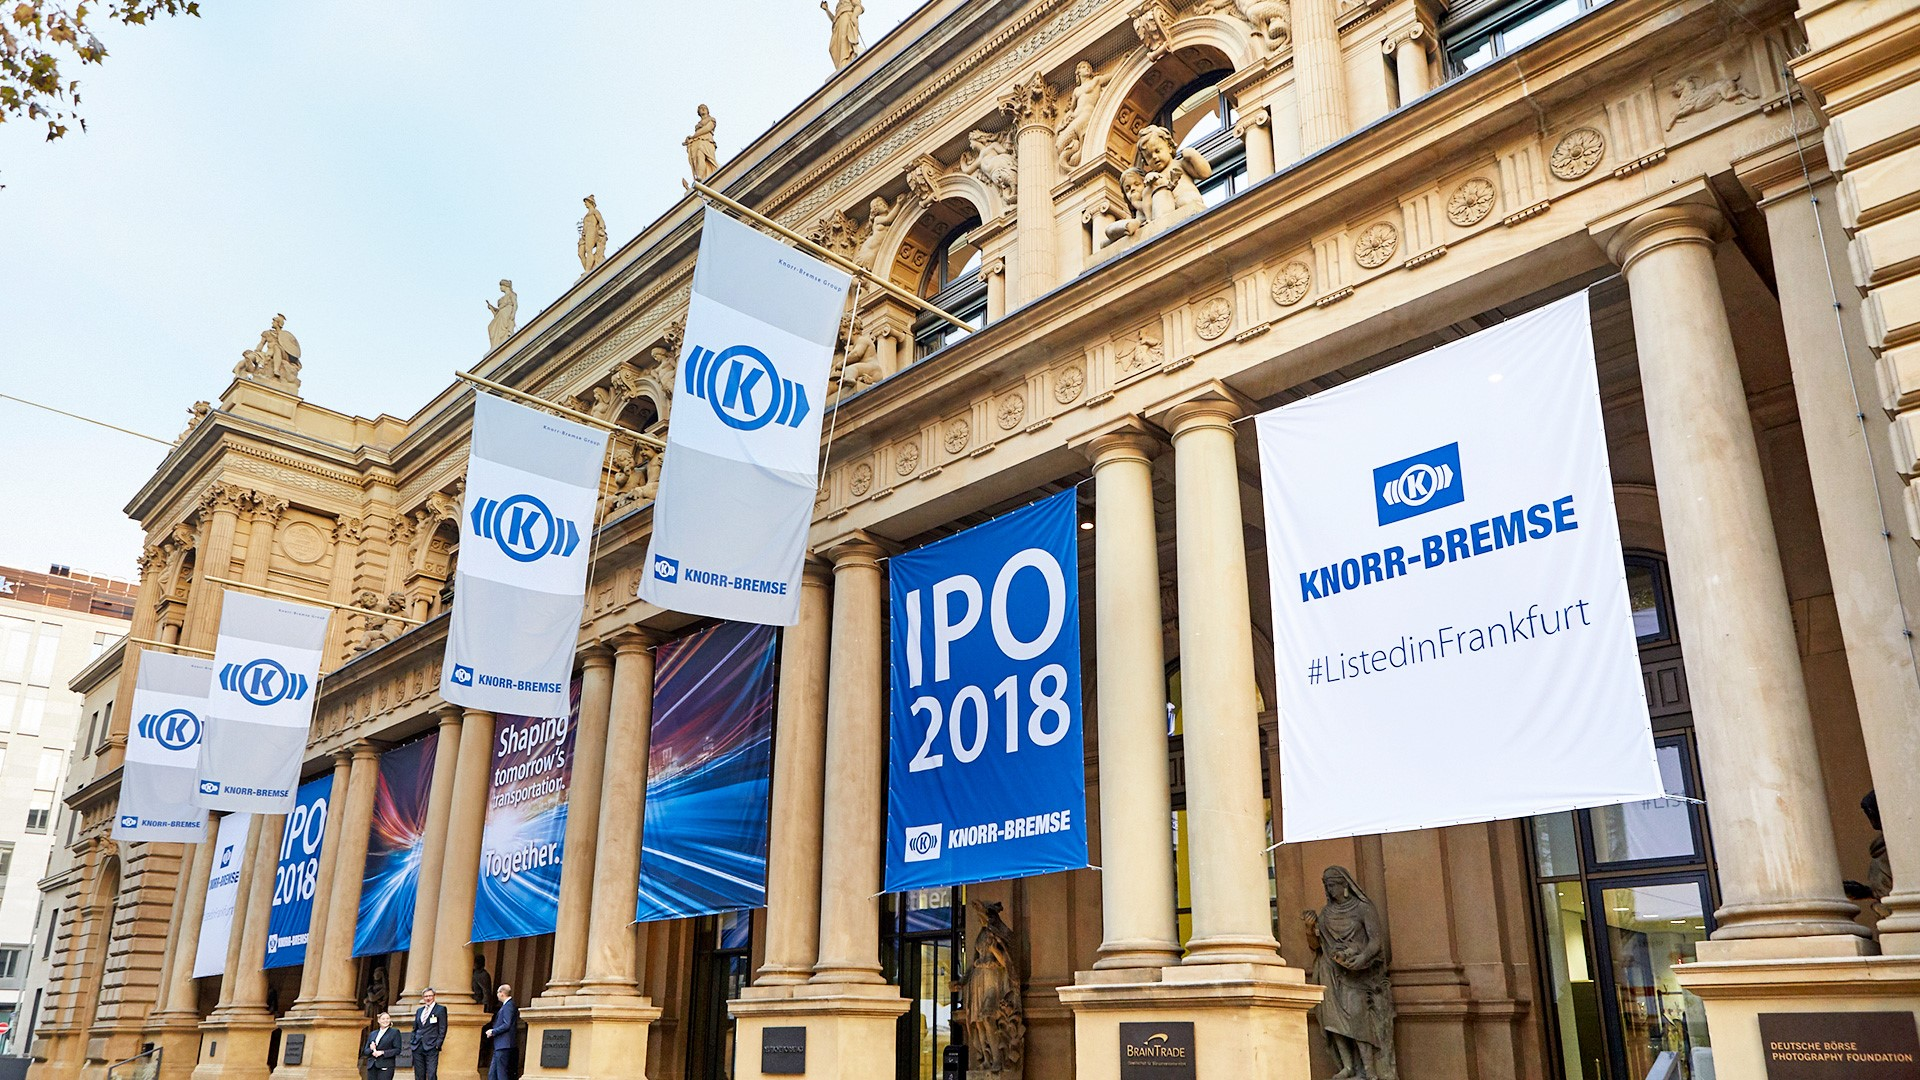 History of the IPO